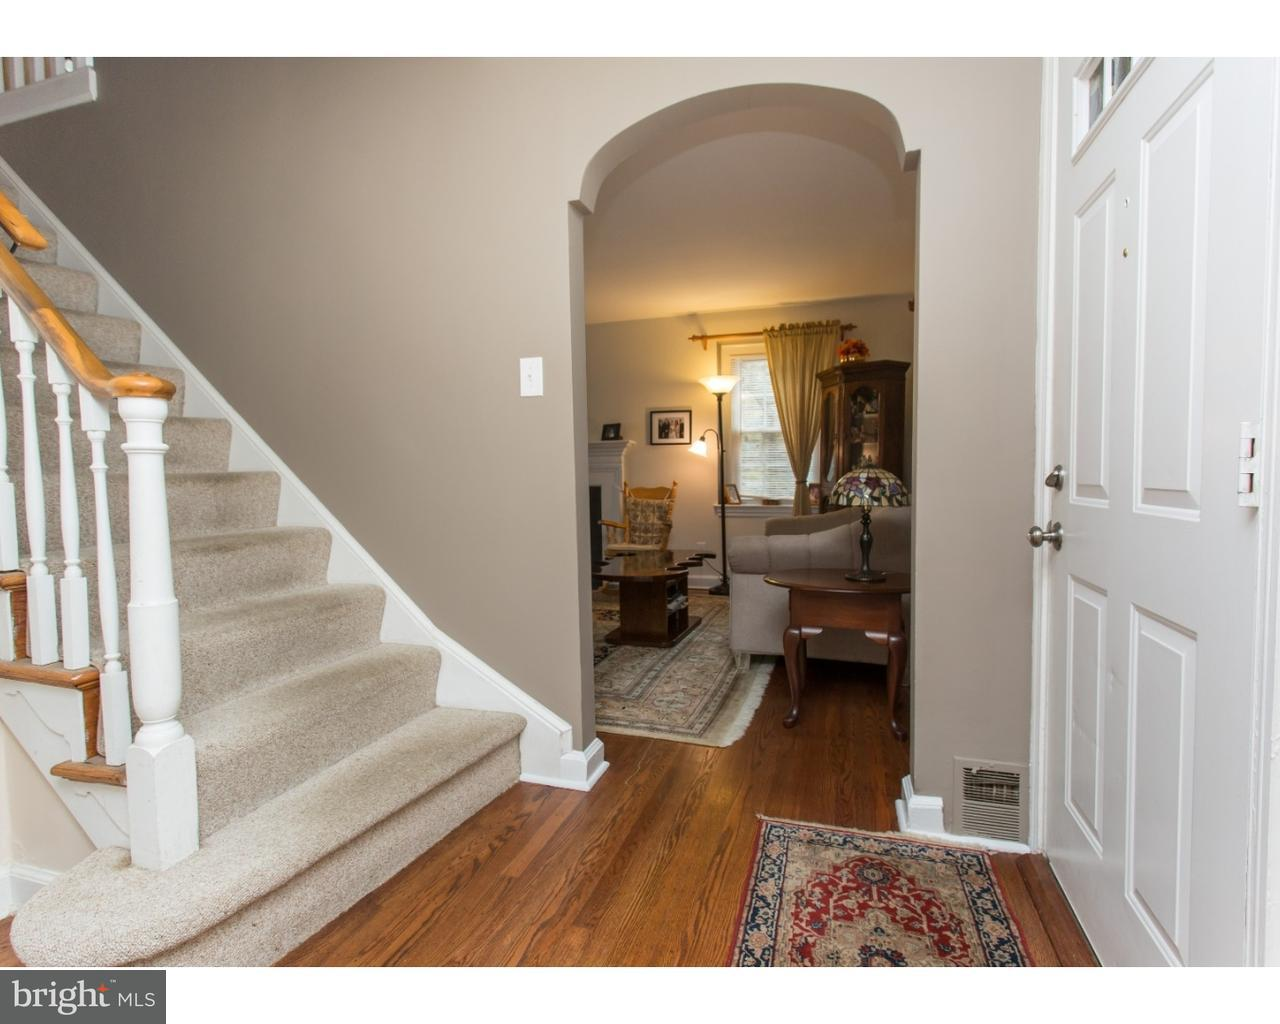 301 RIVERVIEW RD, SWARTHMORE - Listed at $484,400, SWARTHMORE